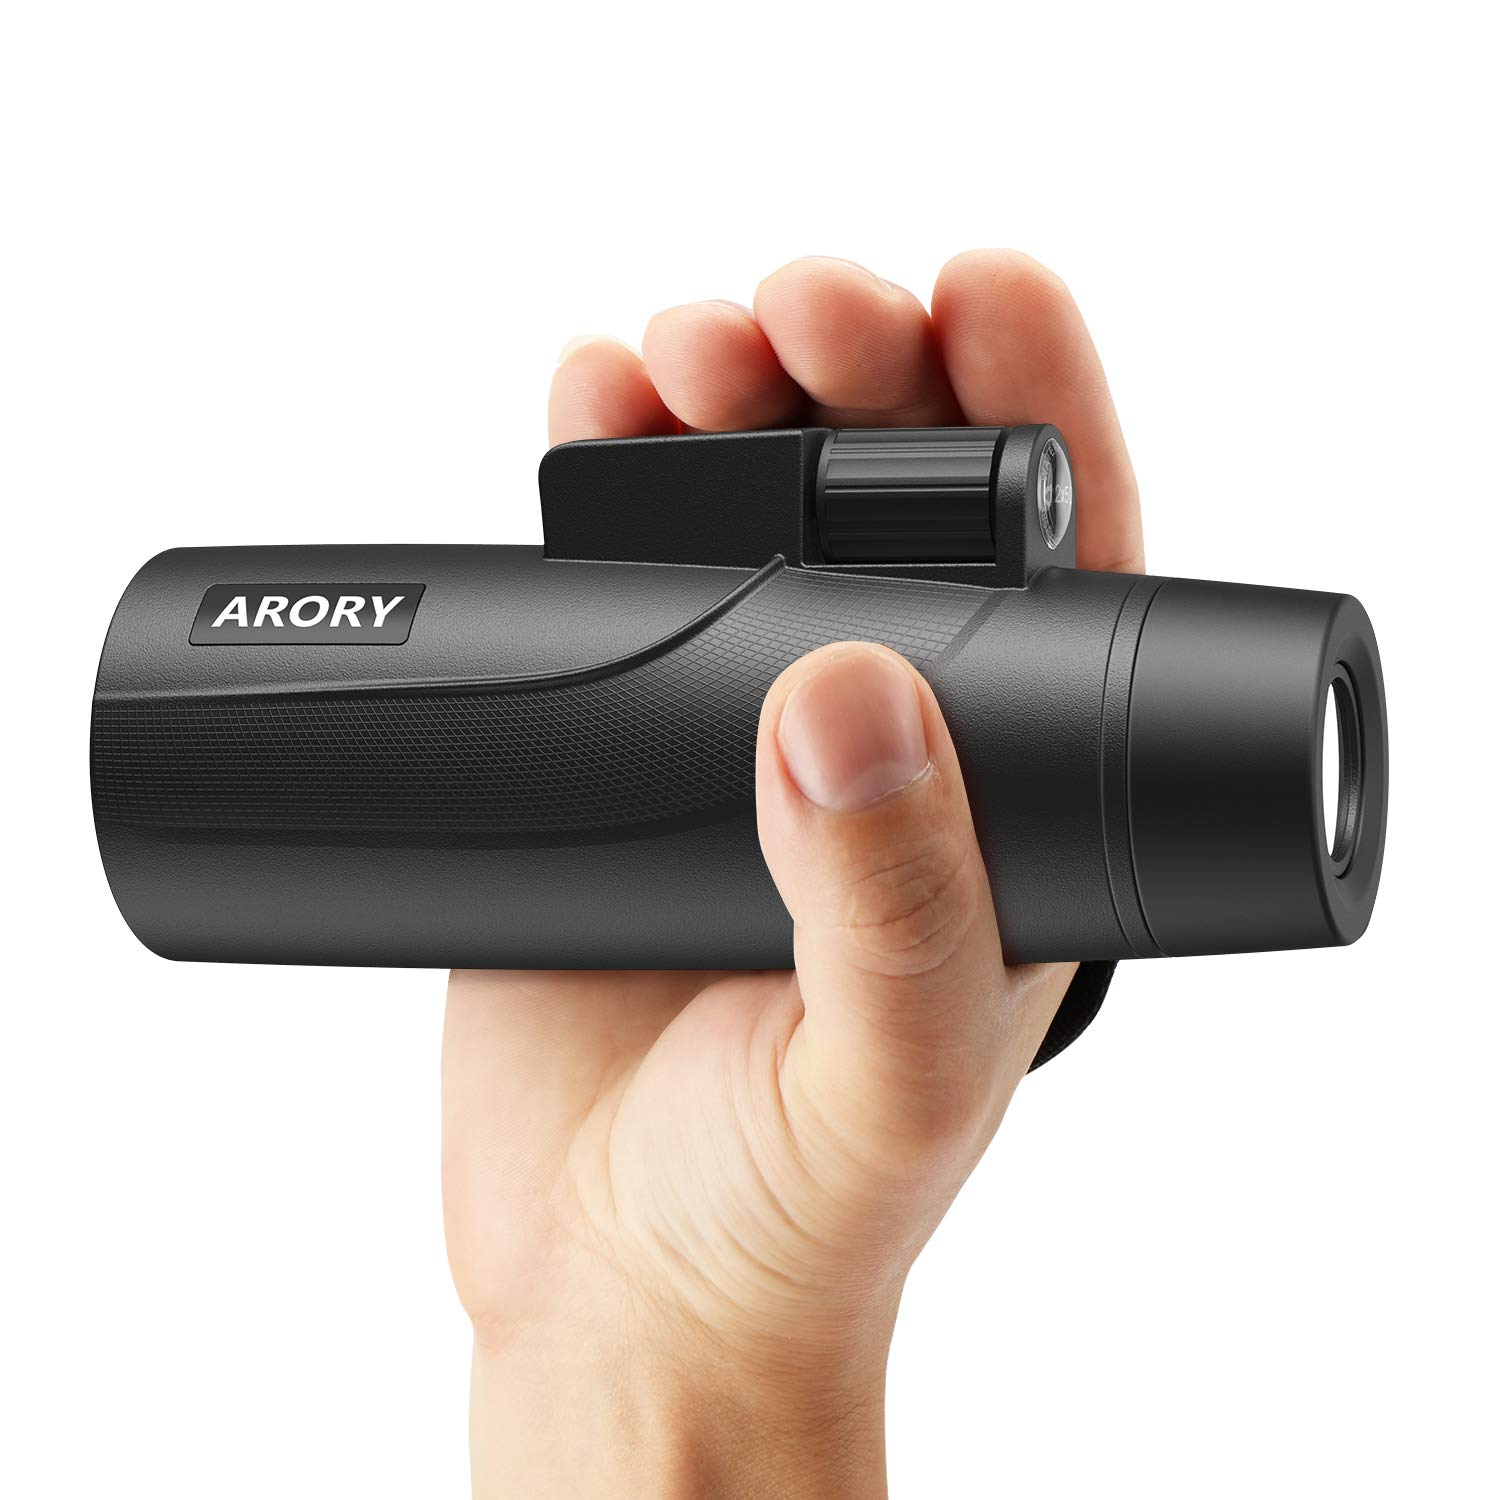 Monocular Telescope 12X50 High Power,ARORY HD Lightweight Monocular(0.58LB),Compact Zomm Monoculars for Adults,BAK4 Prism Fully Coated Optical Lens Single Hand Focus, Great for Camping/Travel/Outdoor by ARORY